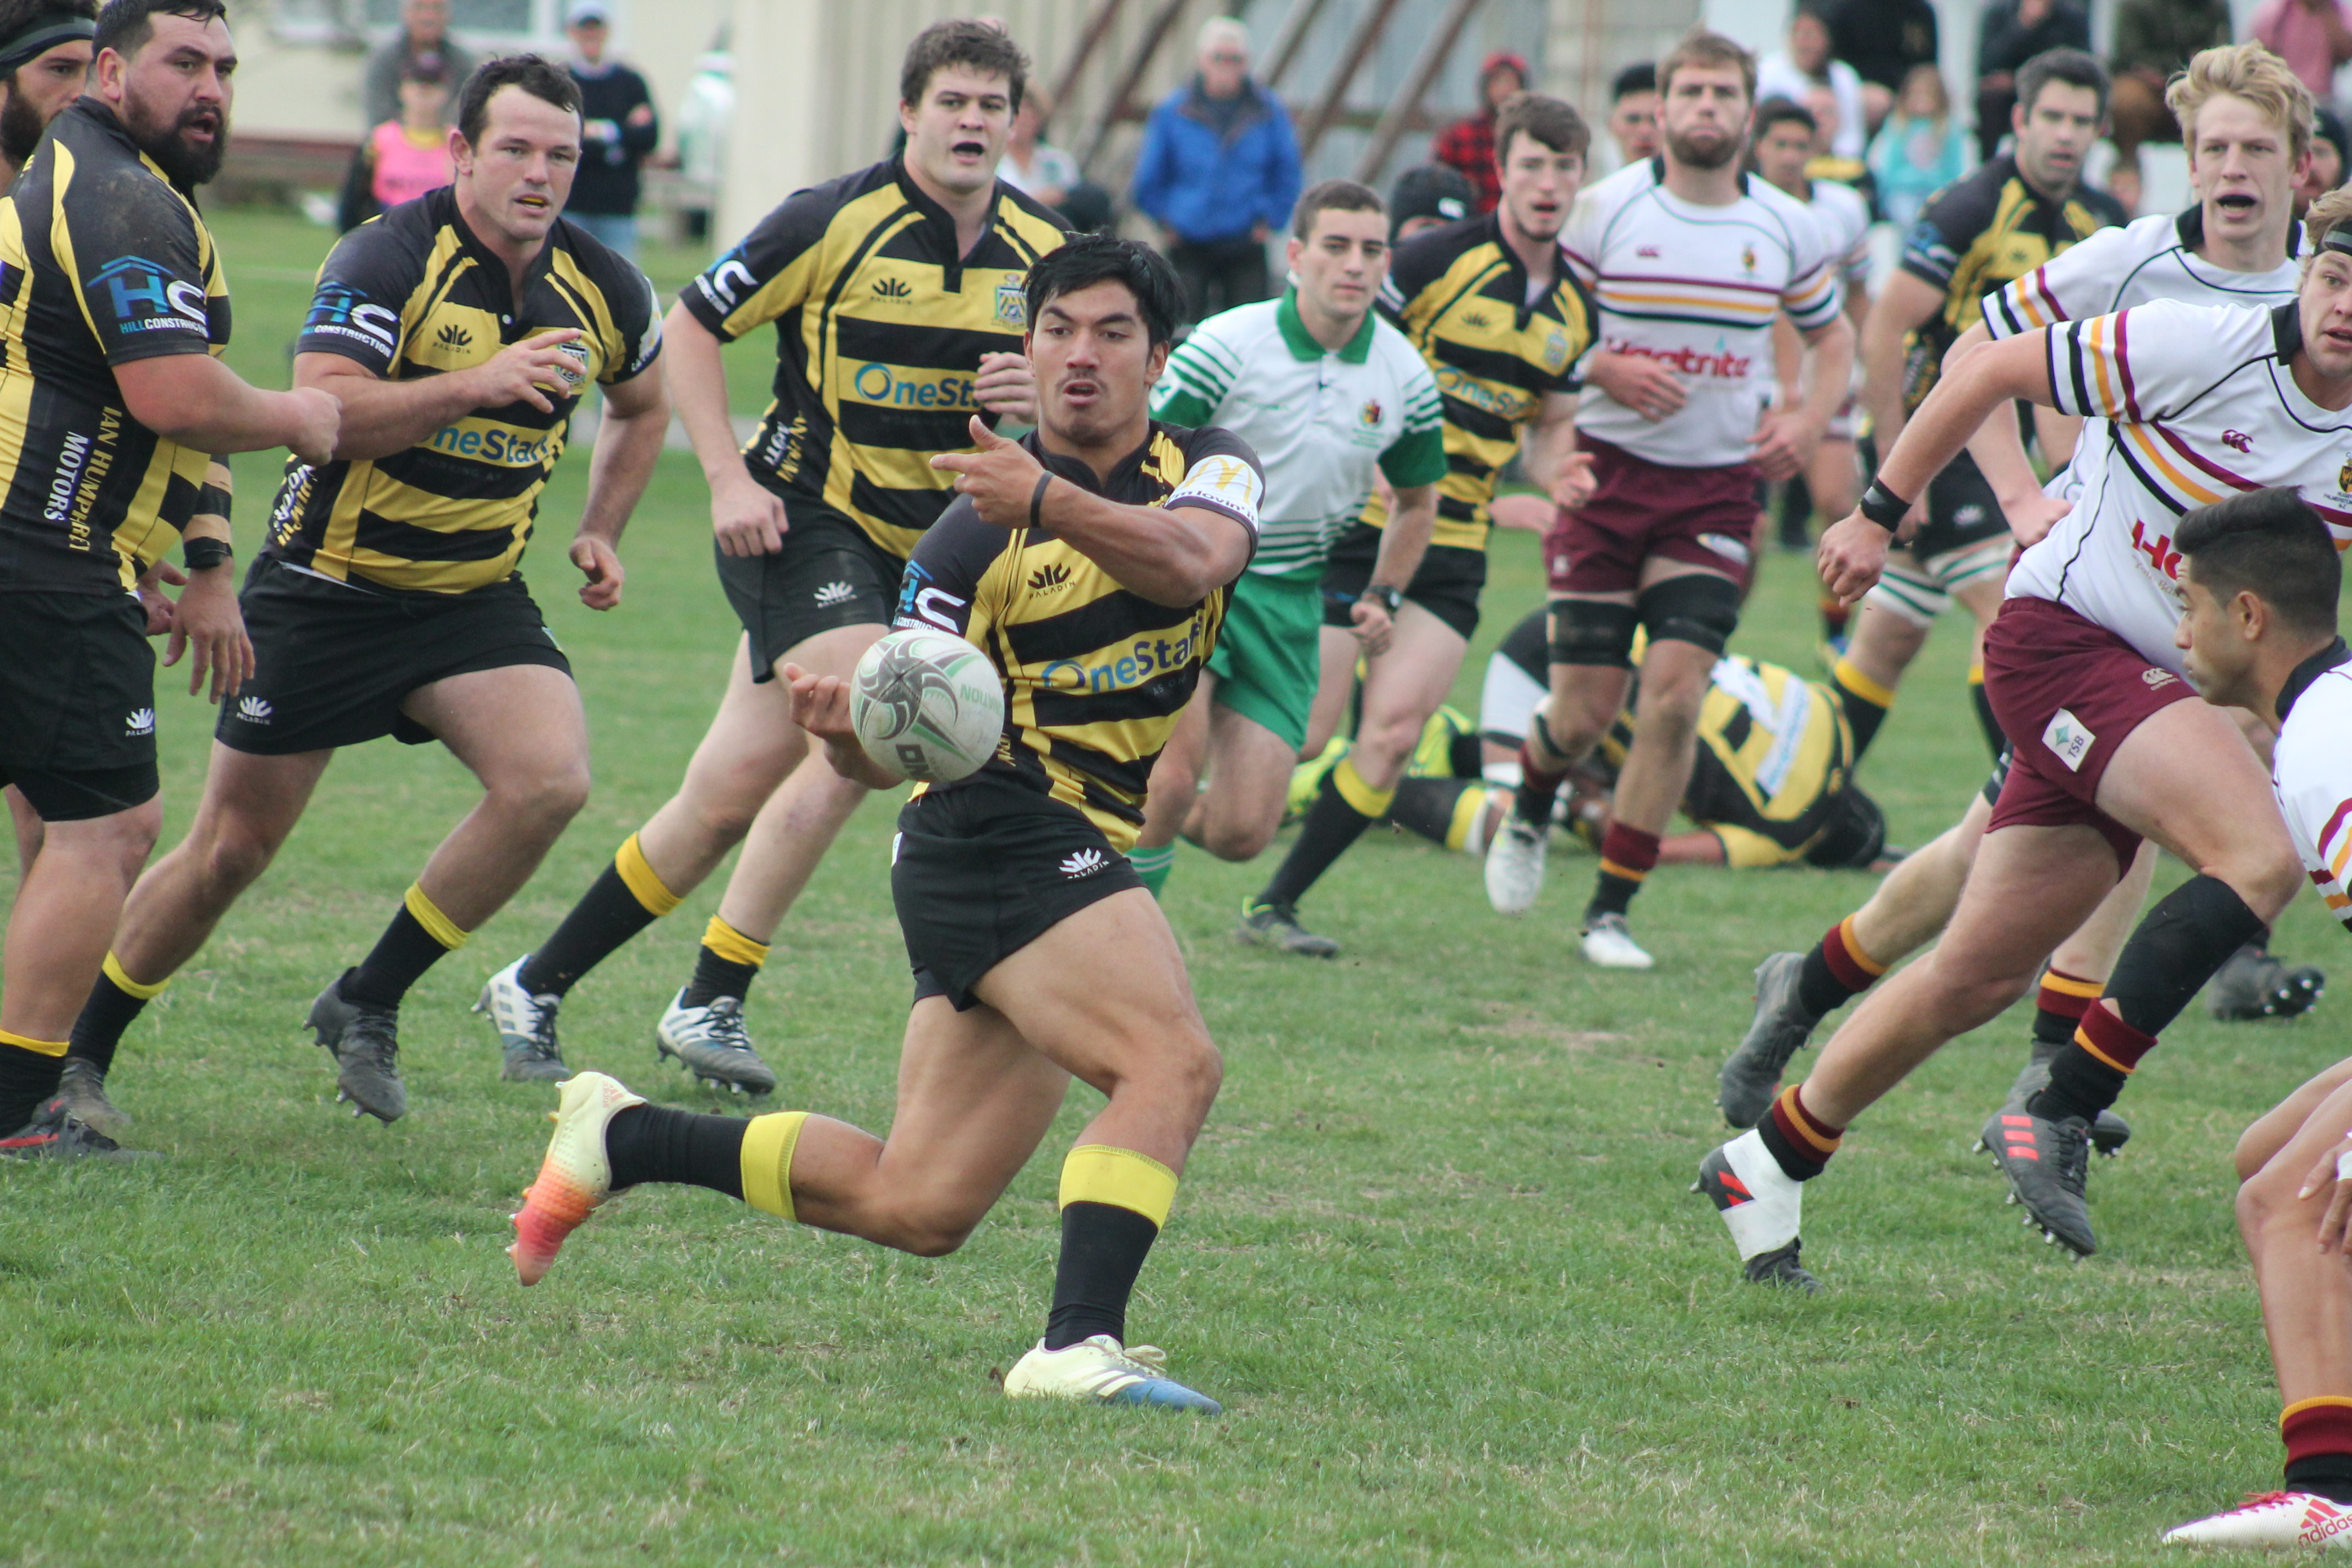 Yellows keep Jubilee Cup race open